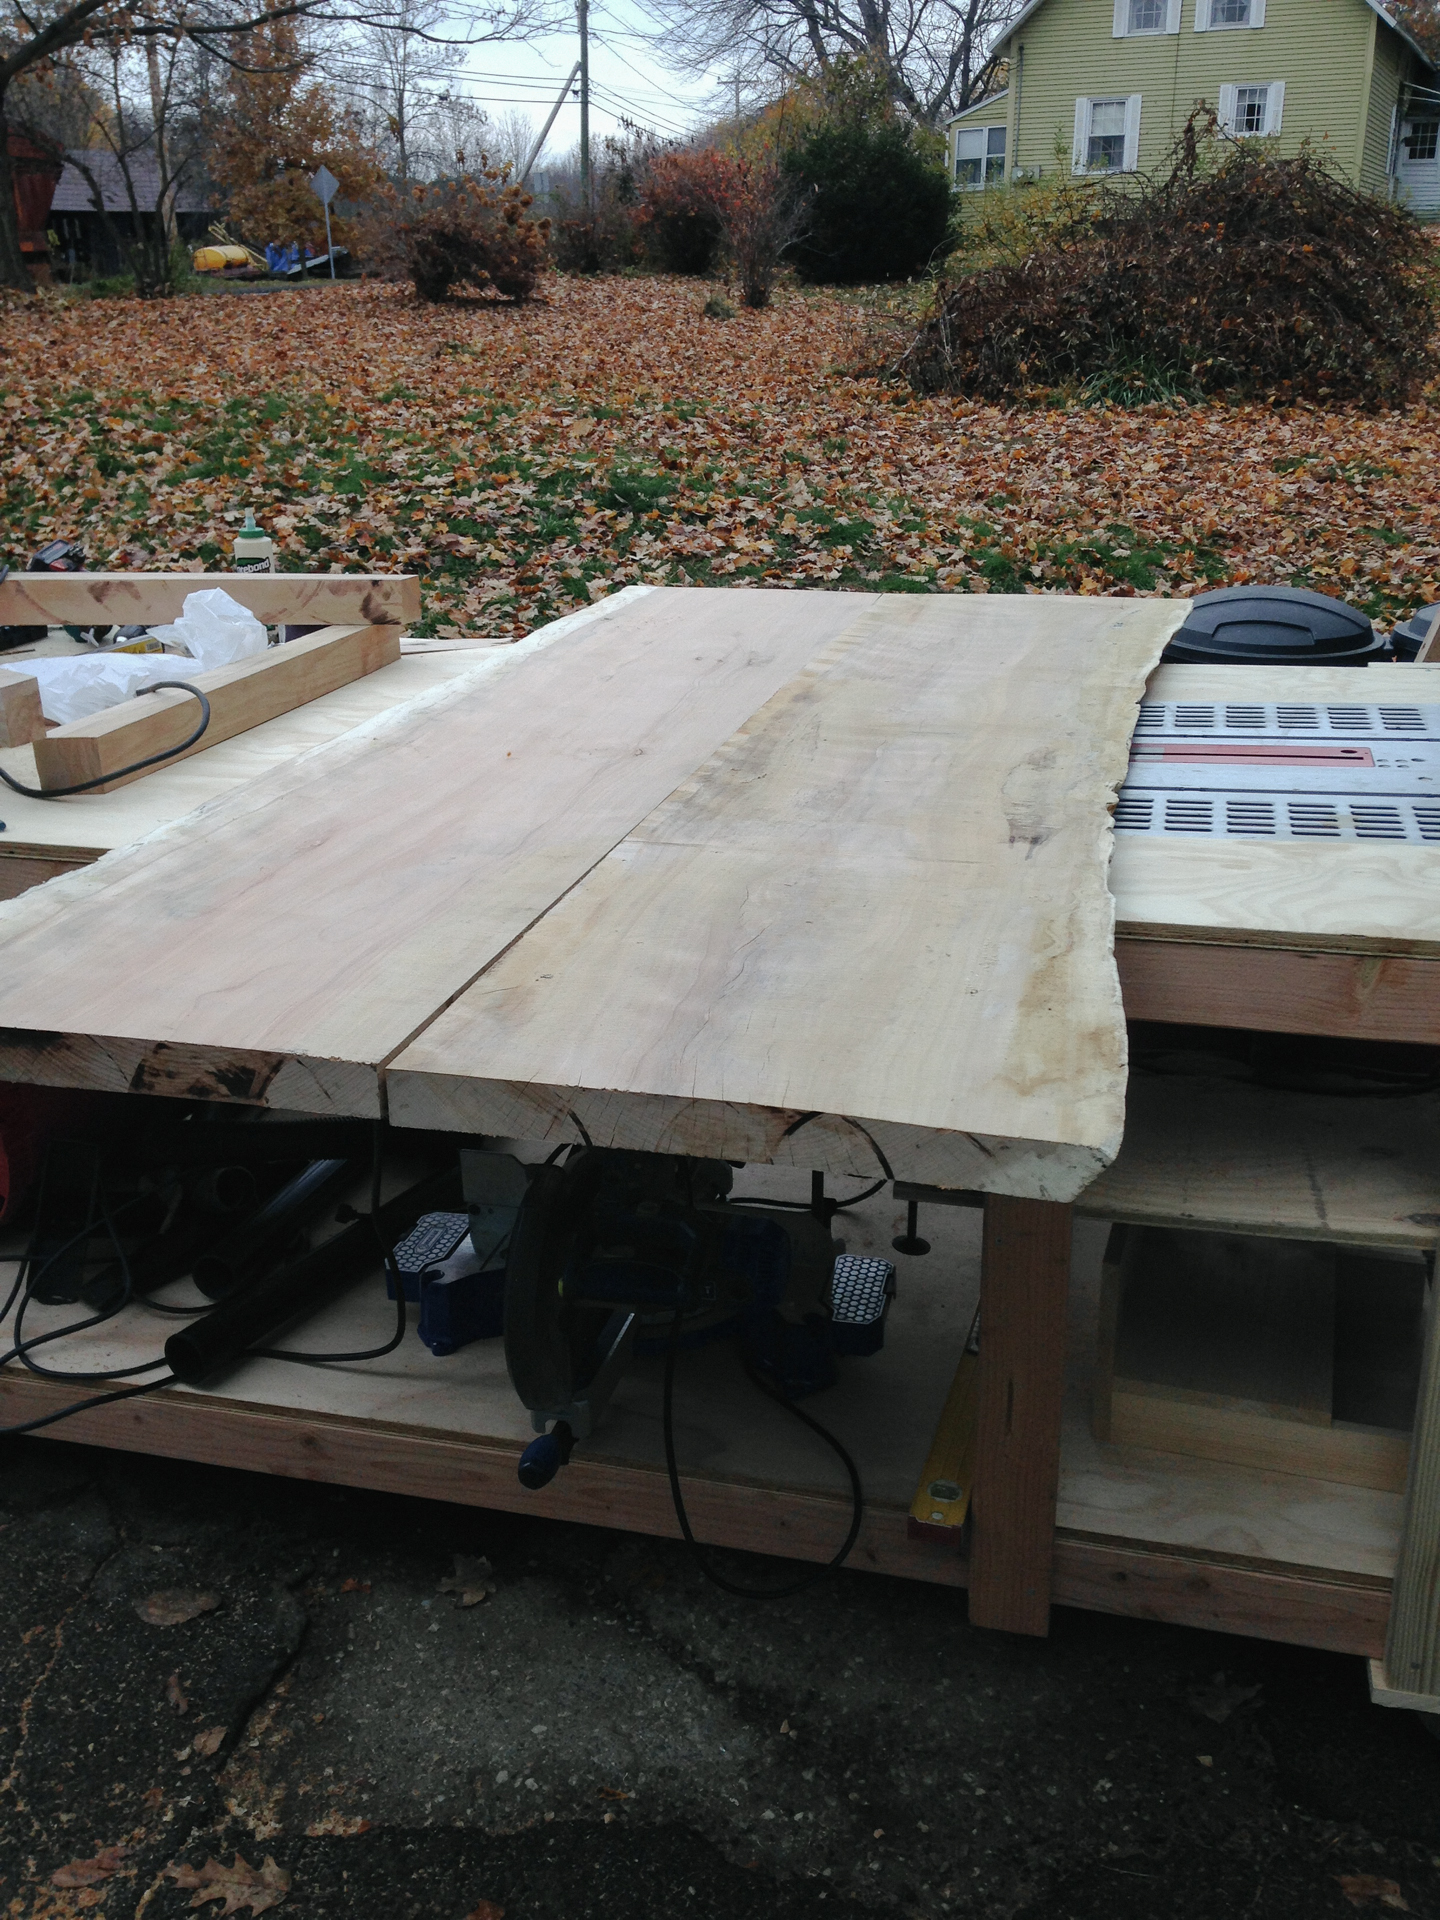 live edge table being made